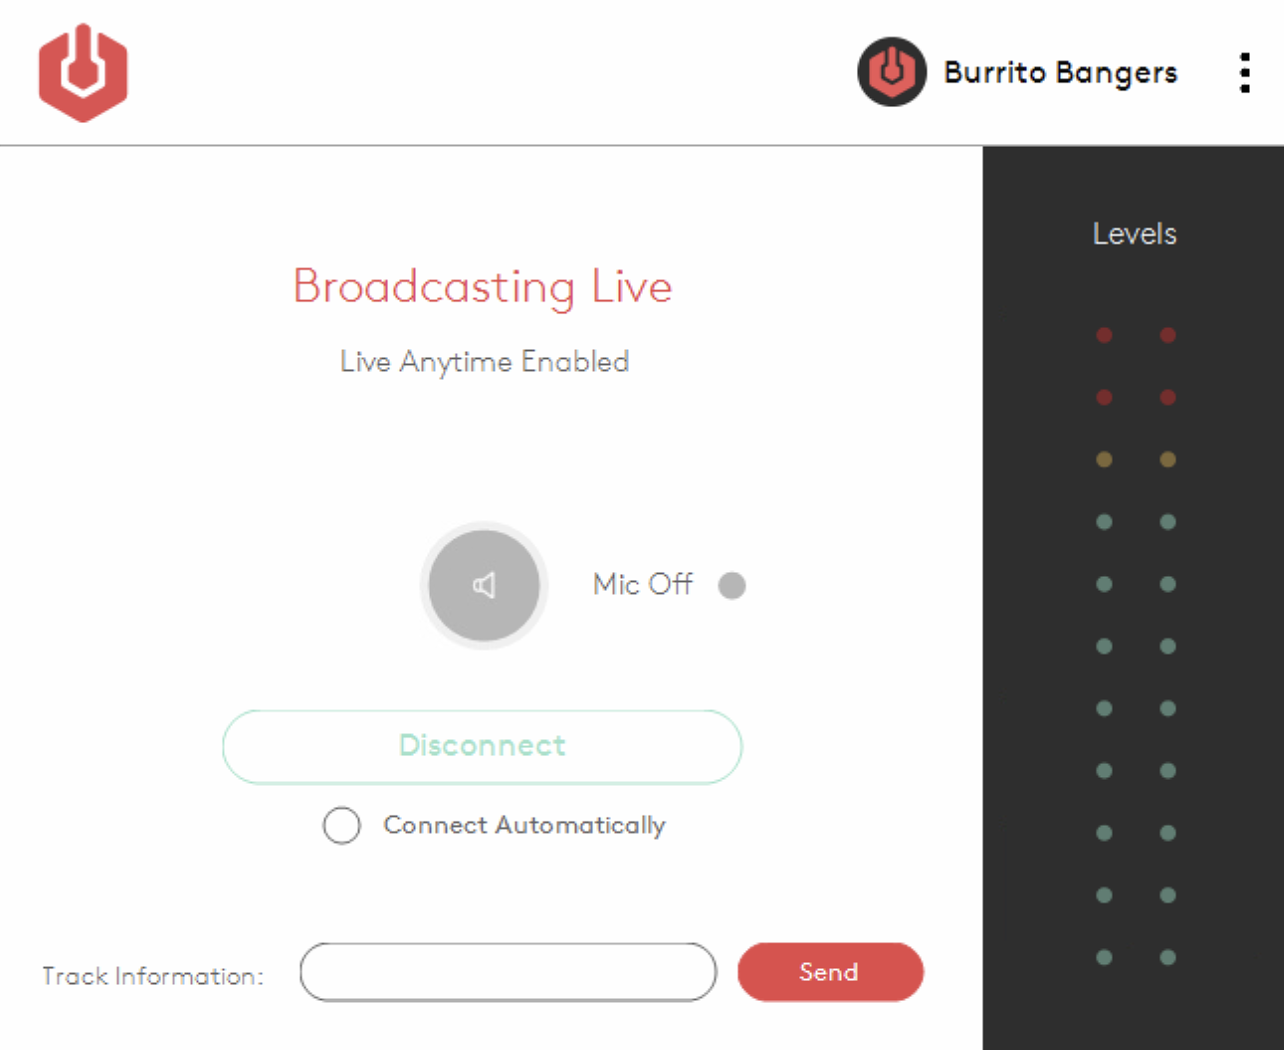 Broadcasting live using the Radio.co Broadcaster.